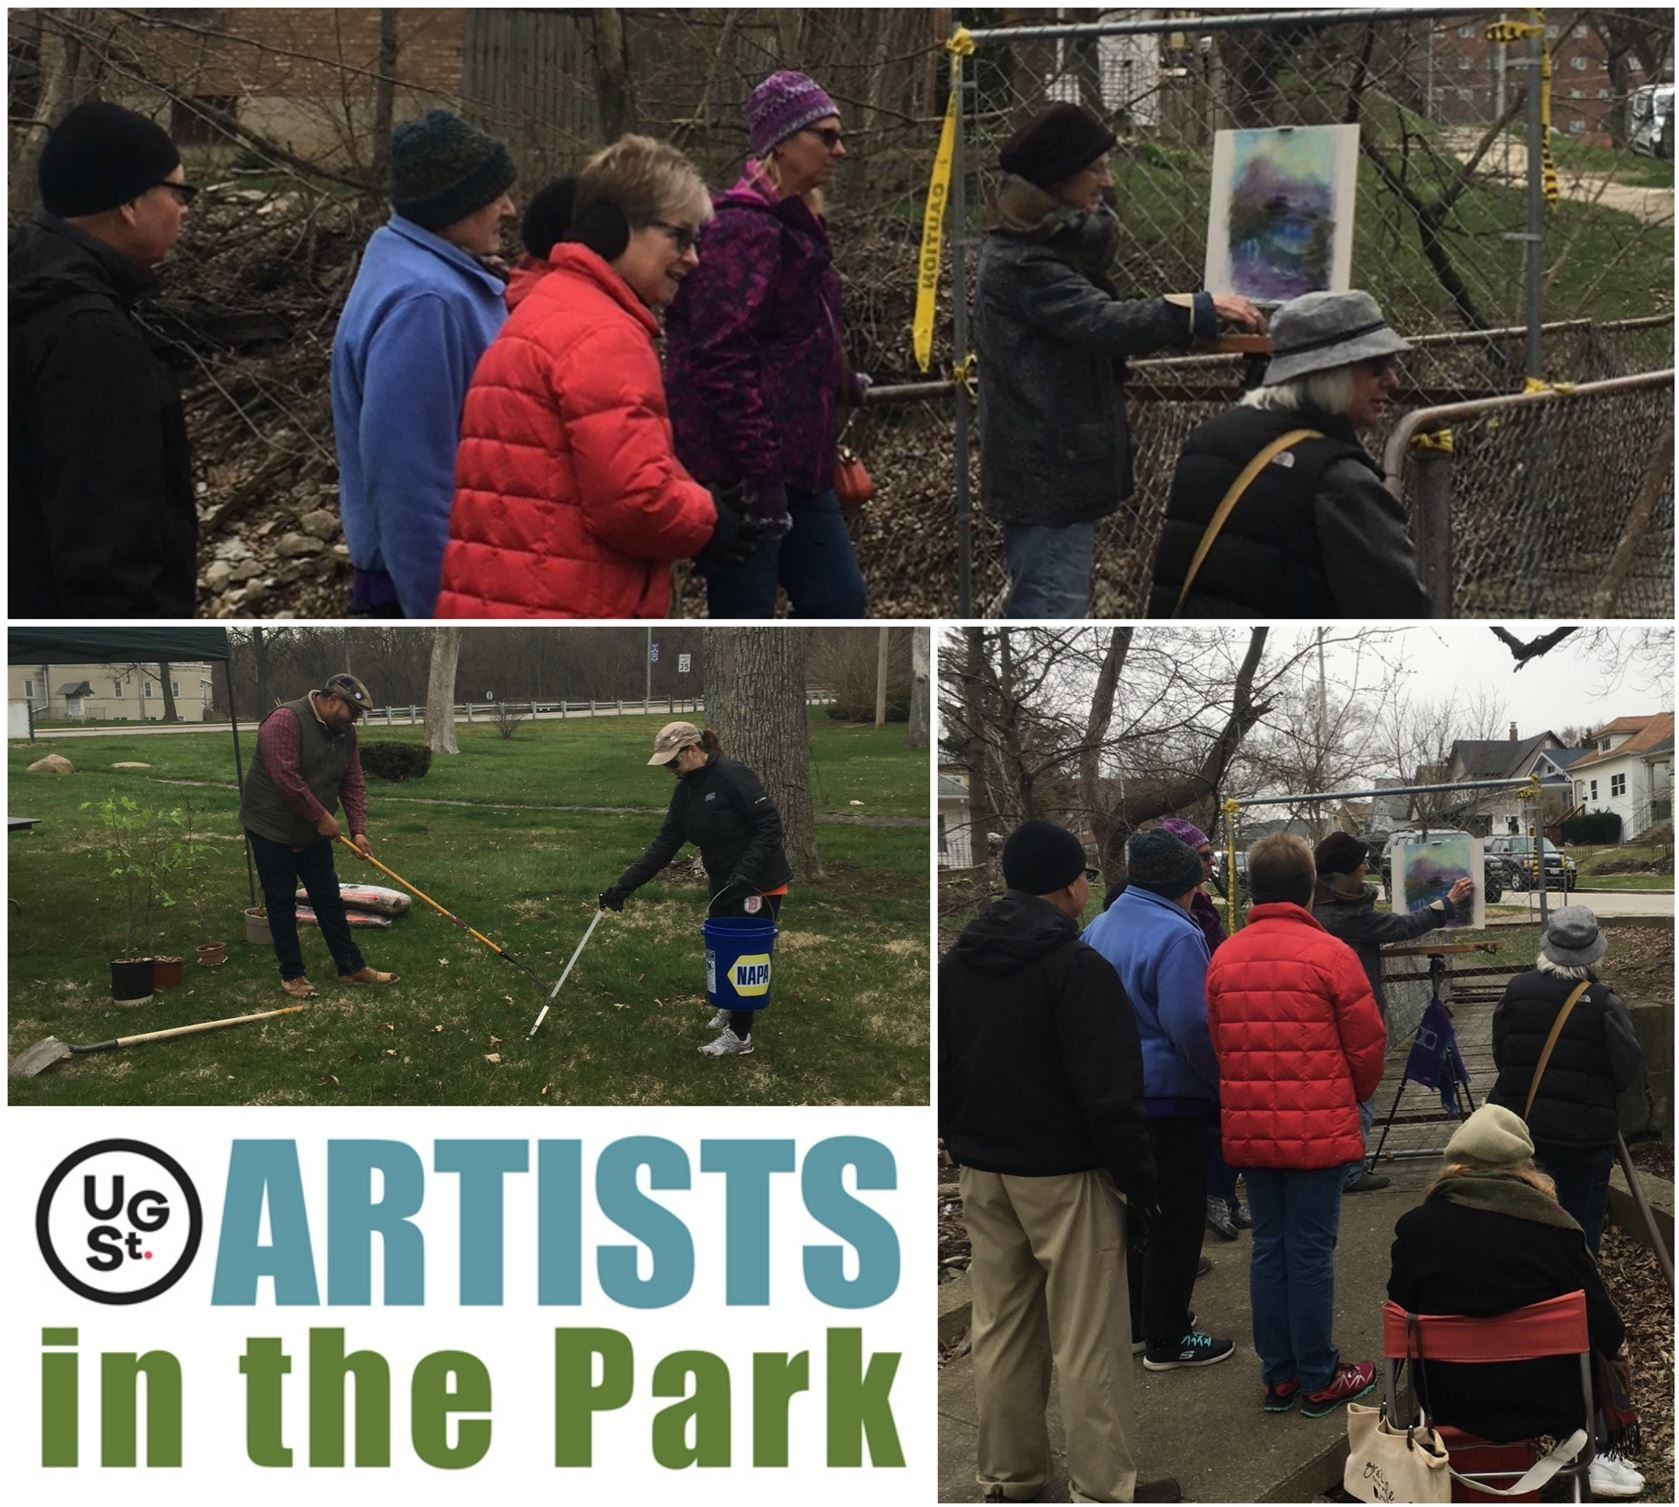 Artists in the park